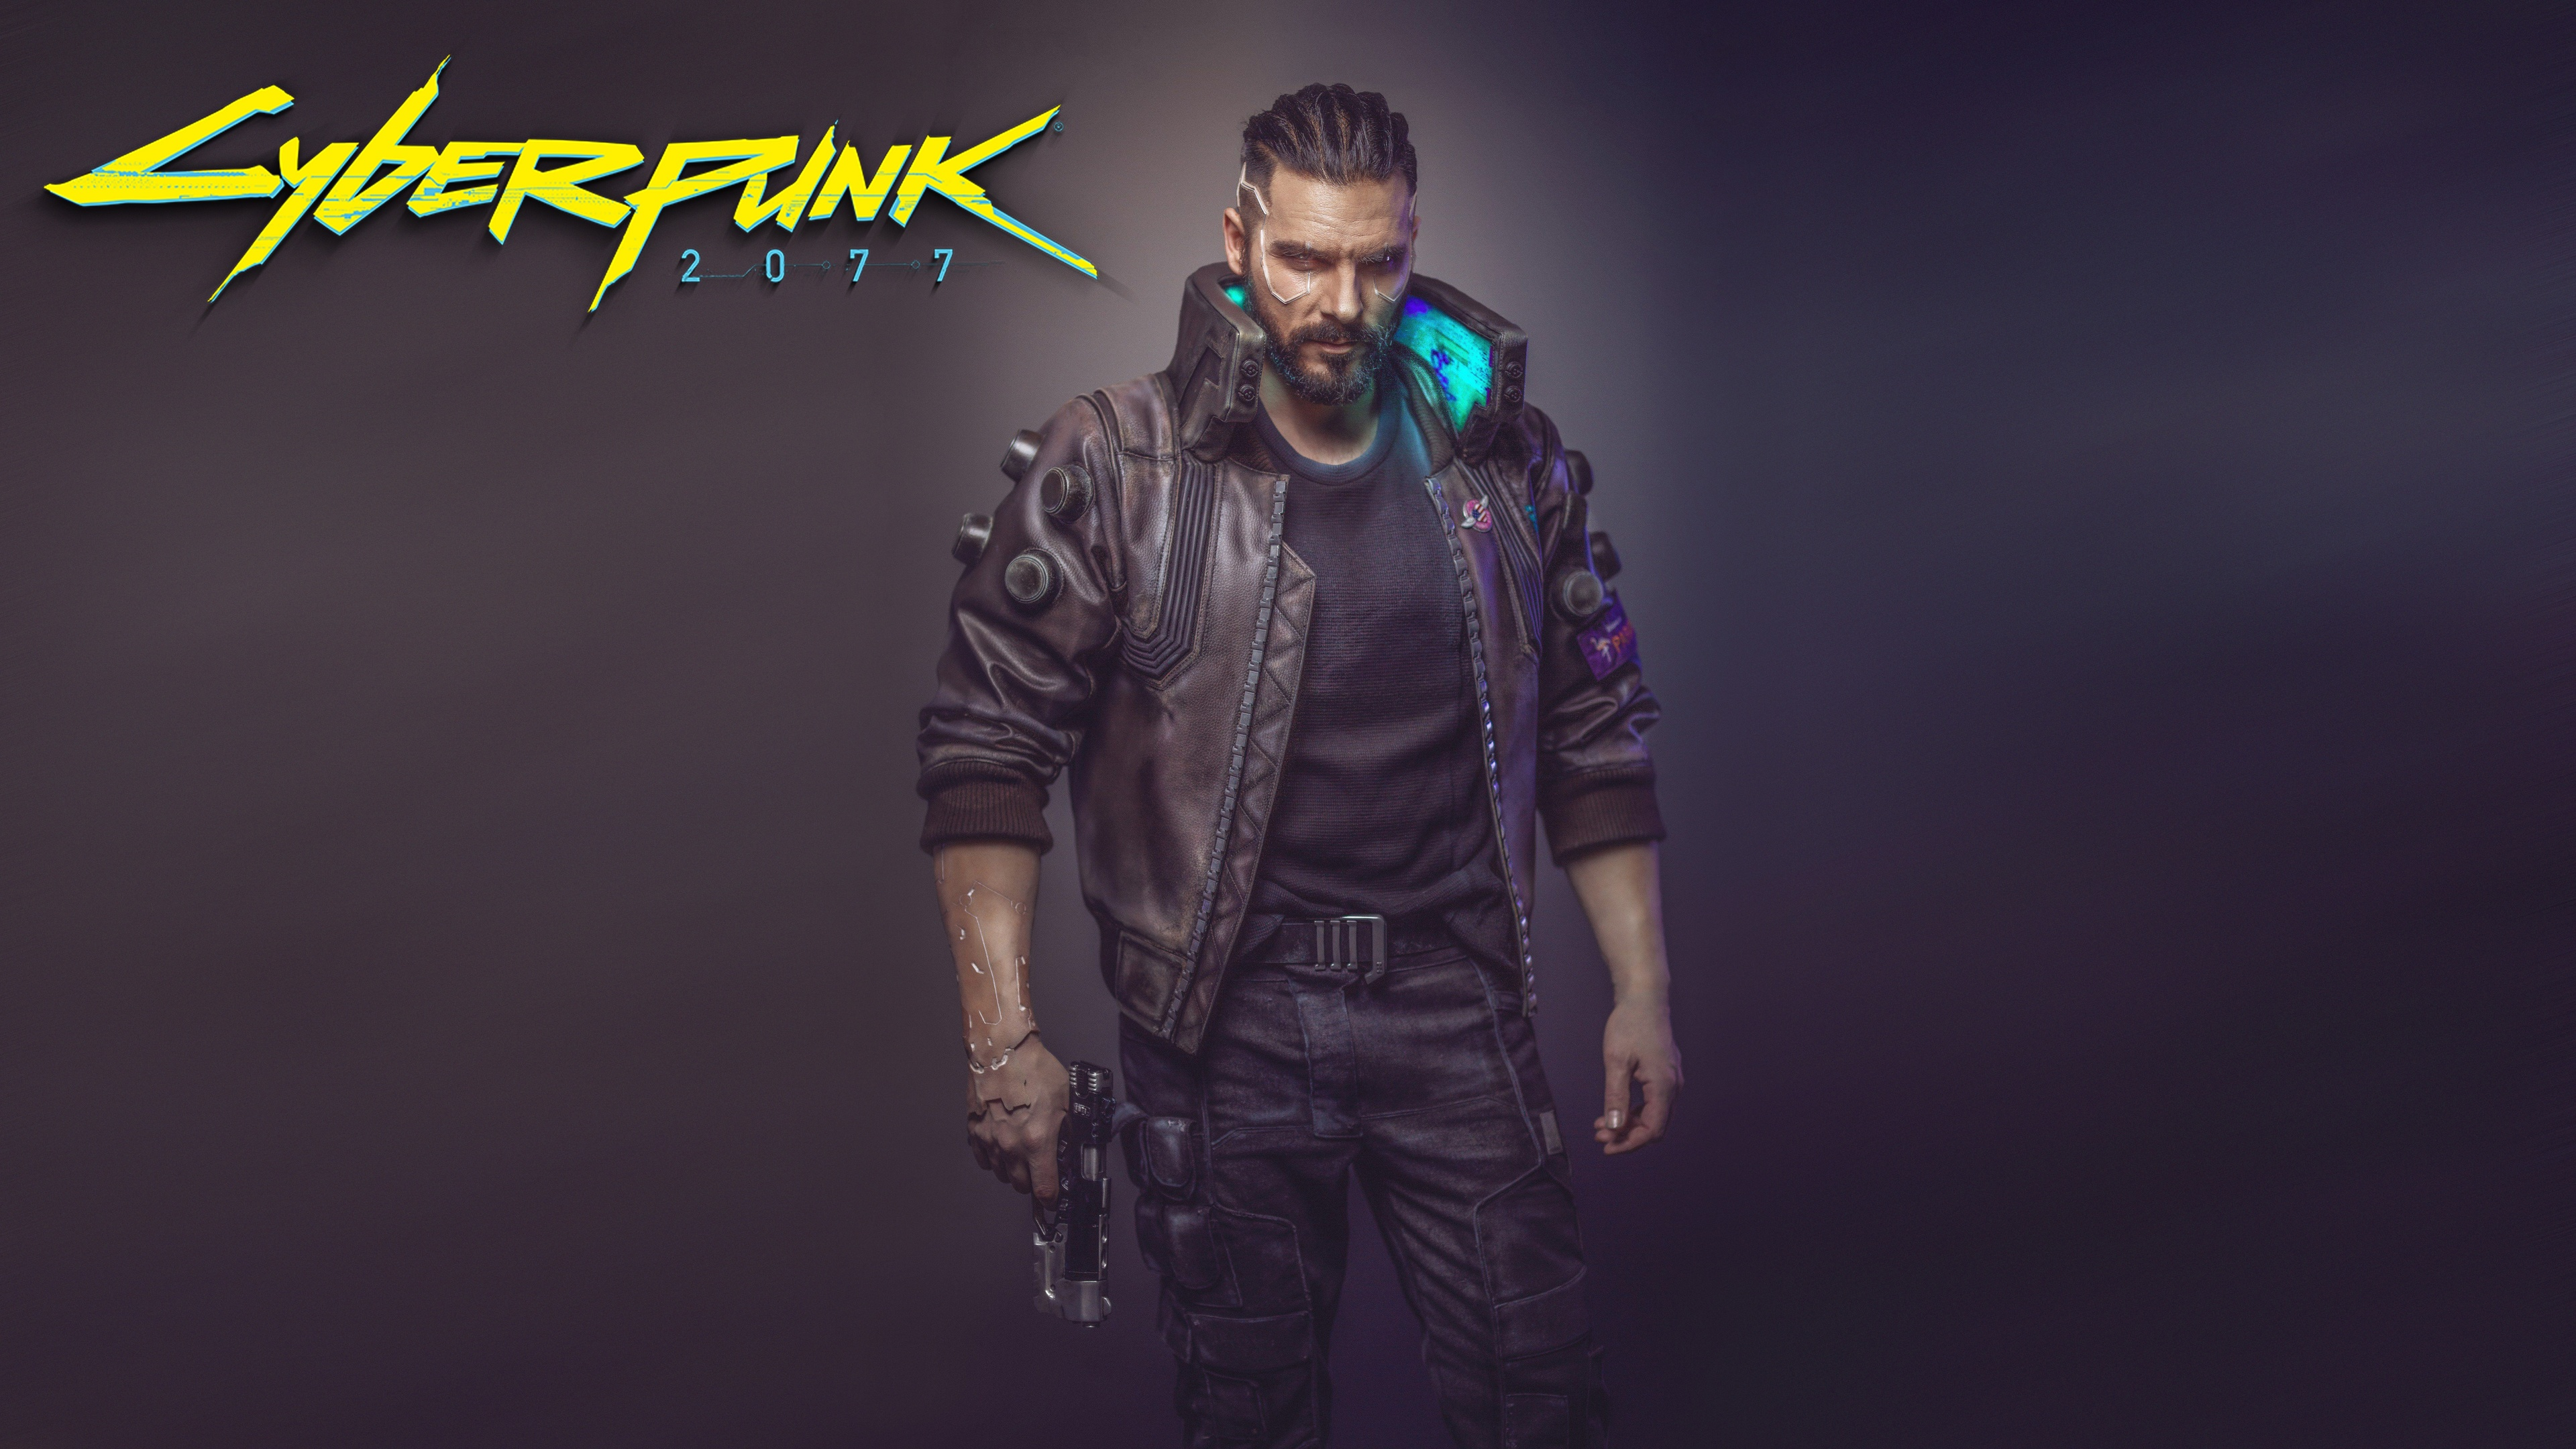 Cyberpunk 2077 cosplay 8k xbox games wallpapers ps games wallpapers pc games wallpapers hd - Cyberpunk 2077 wallpaper 4k ...